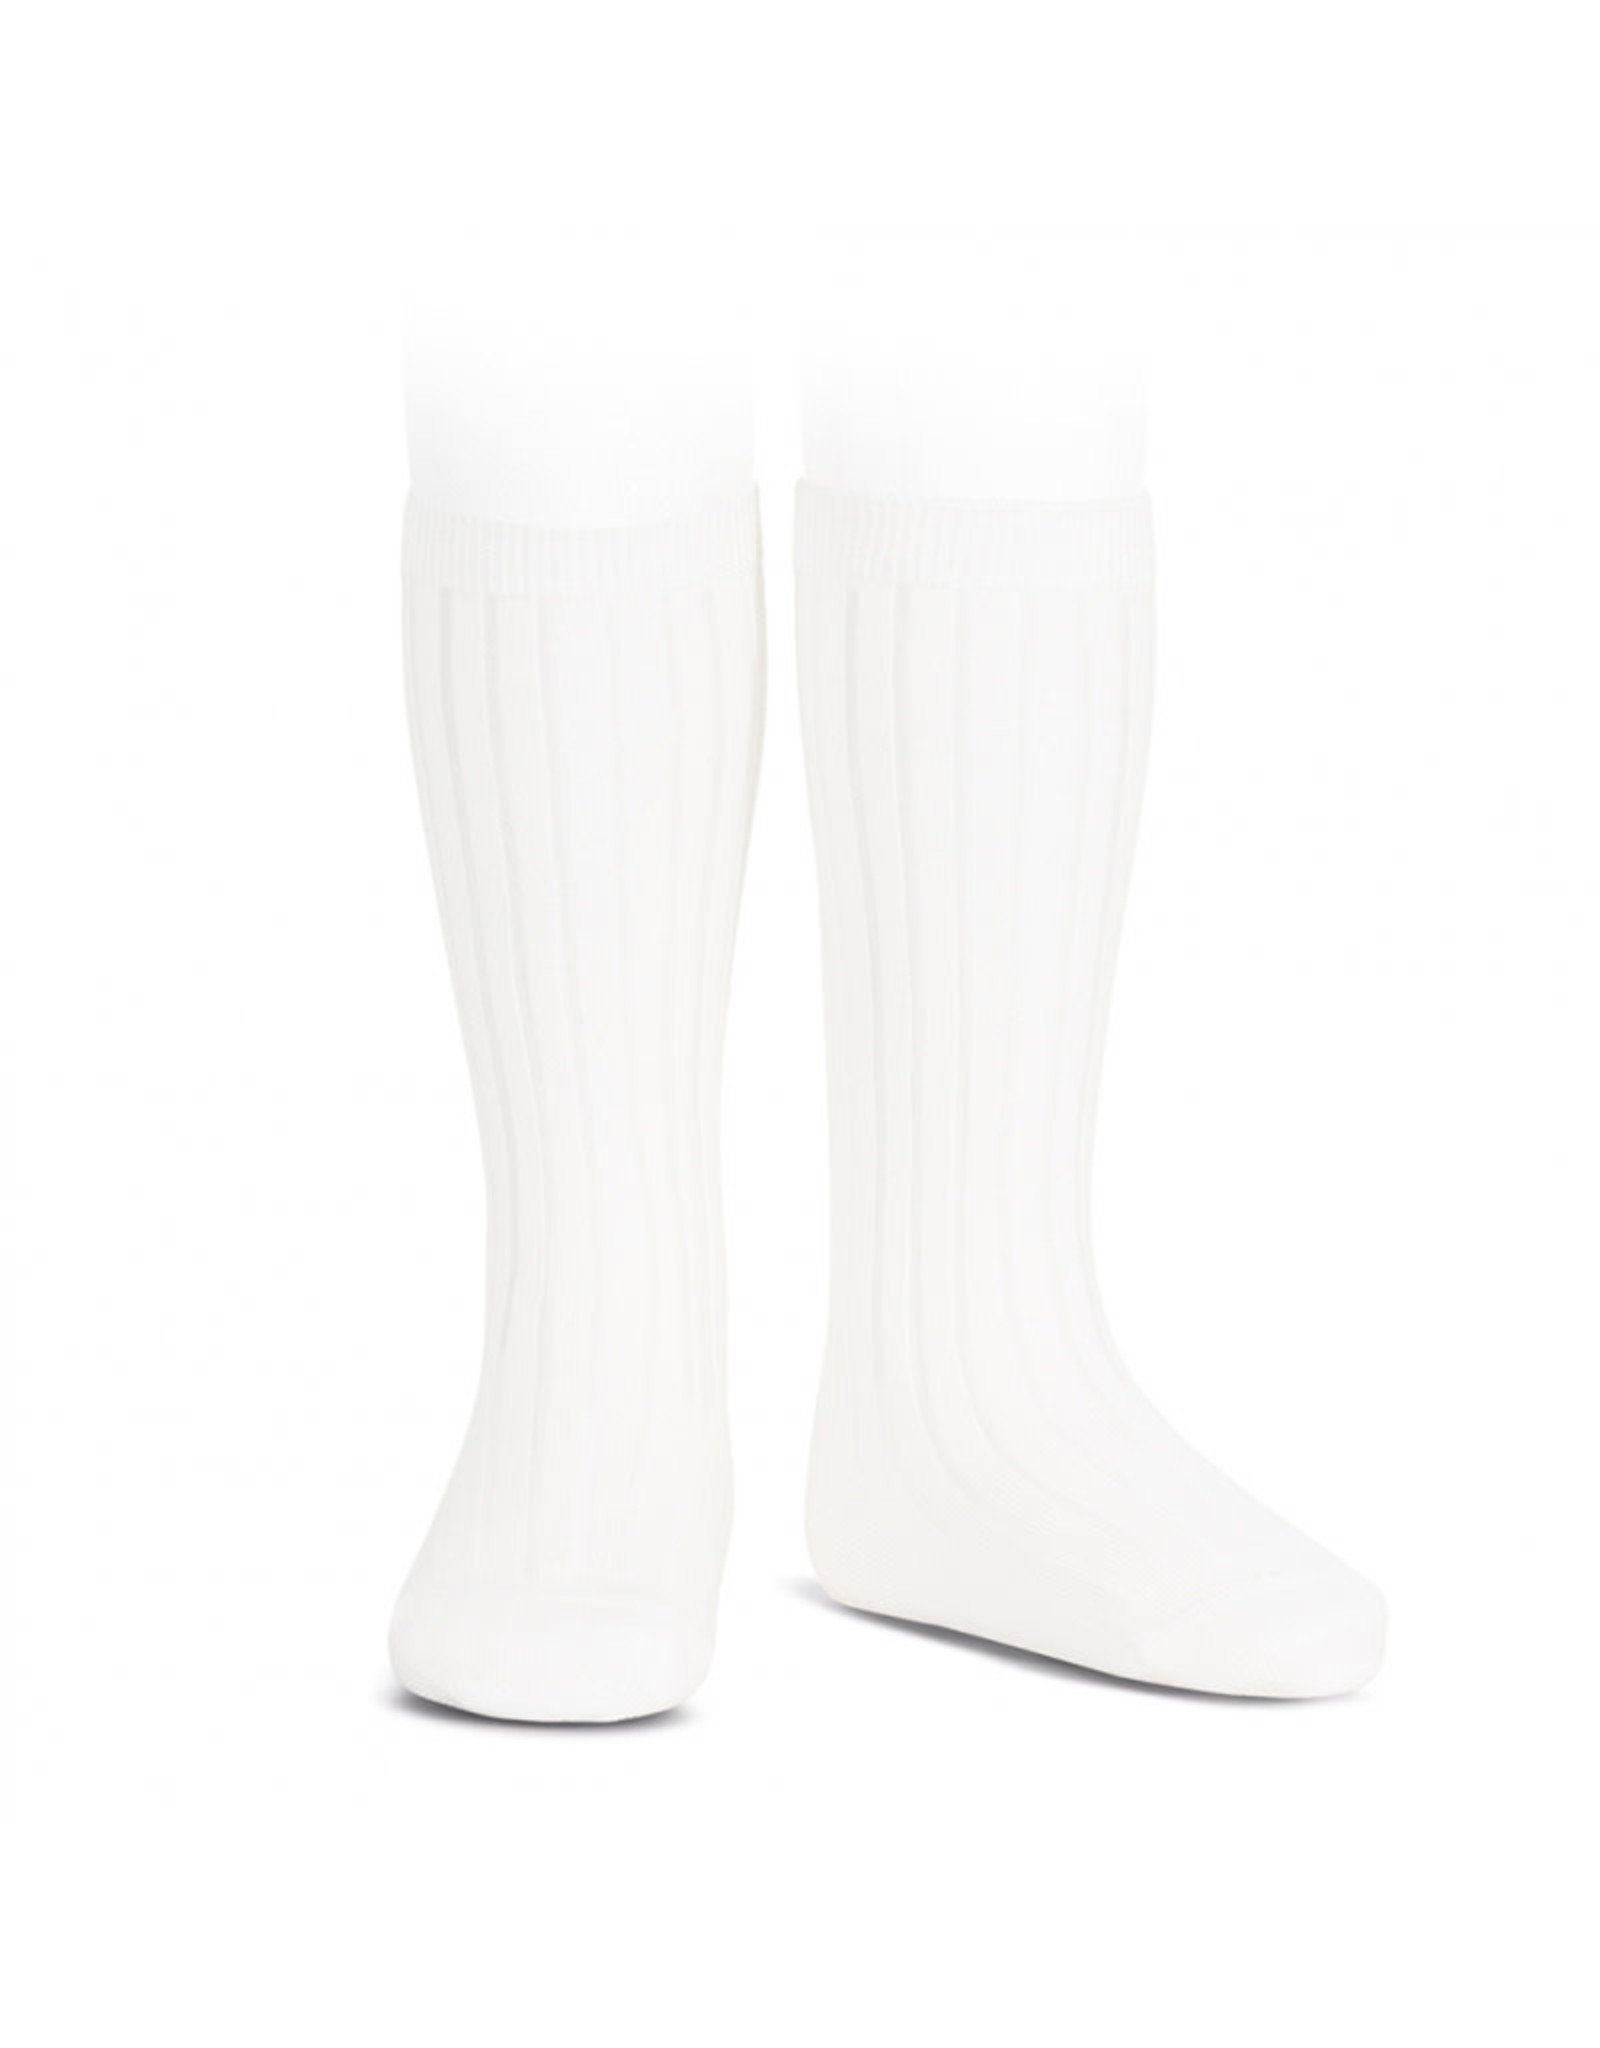 CONDOR White Rib Knee High Socks